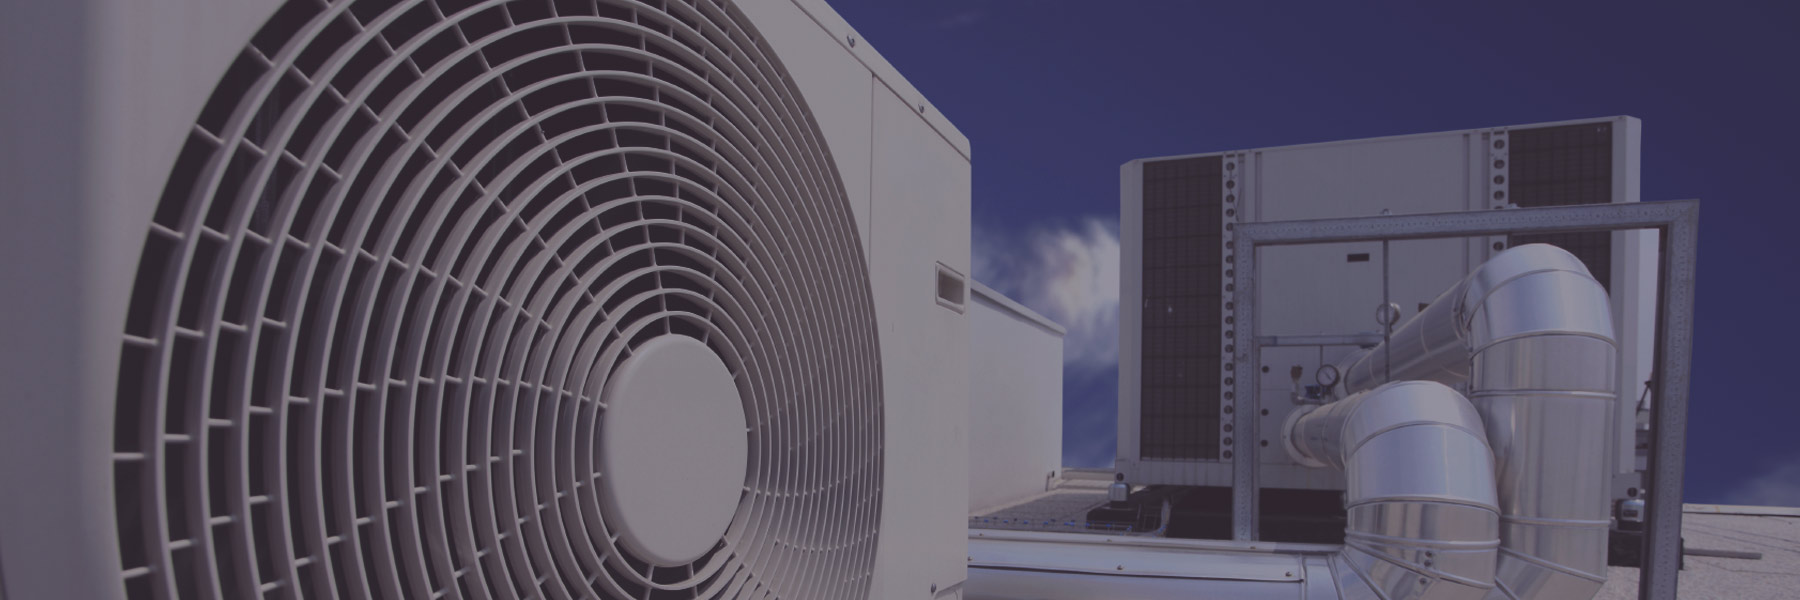 Air con and cleanroom extraction fans on a roof